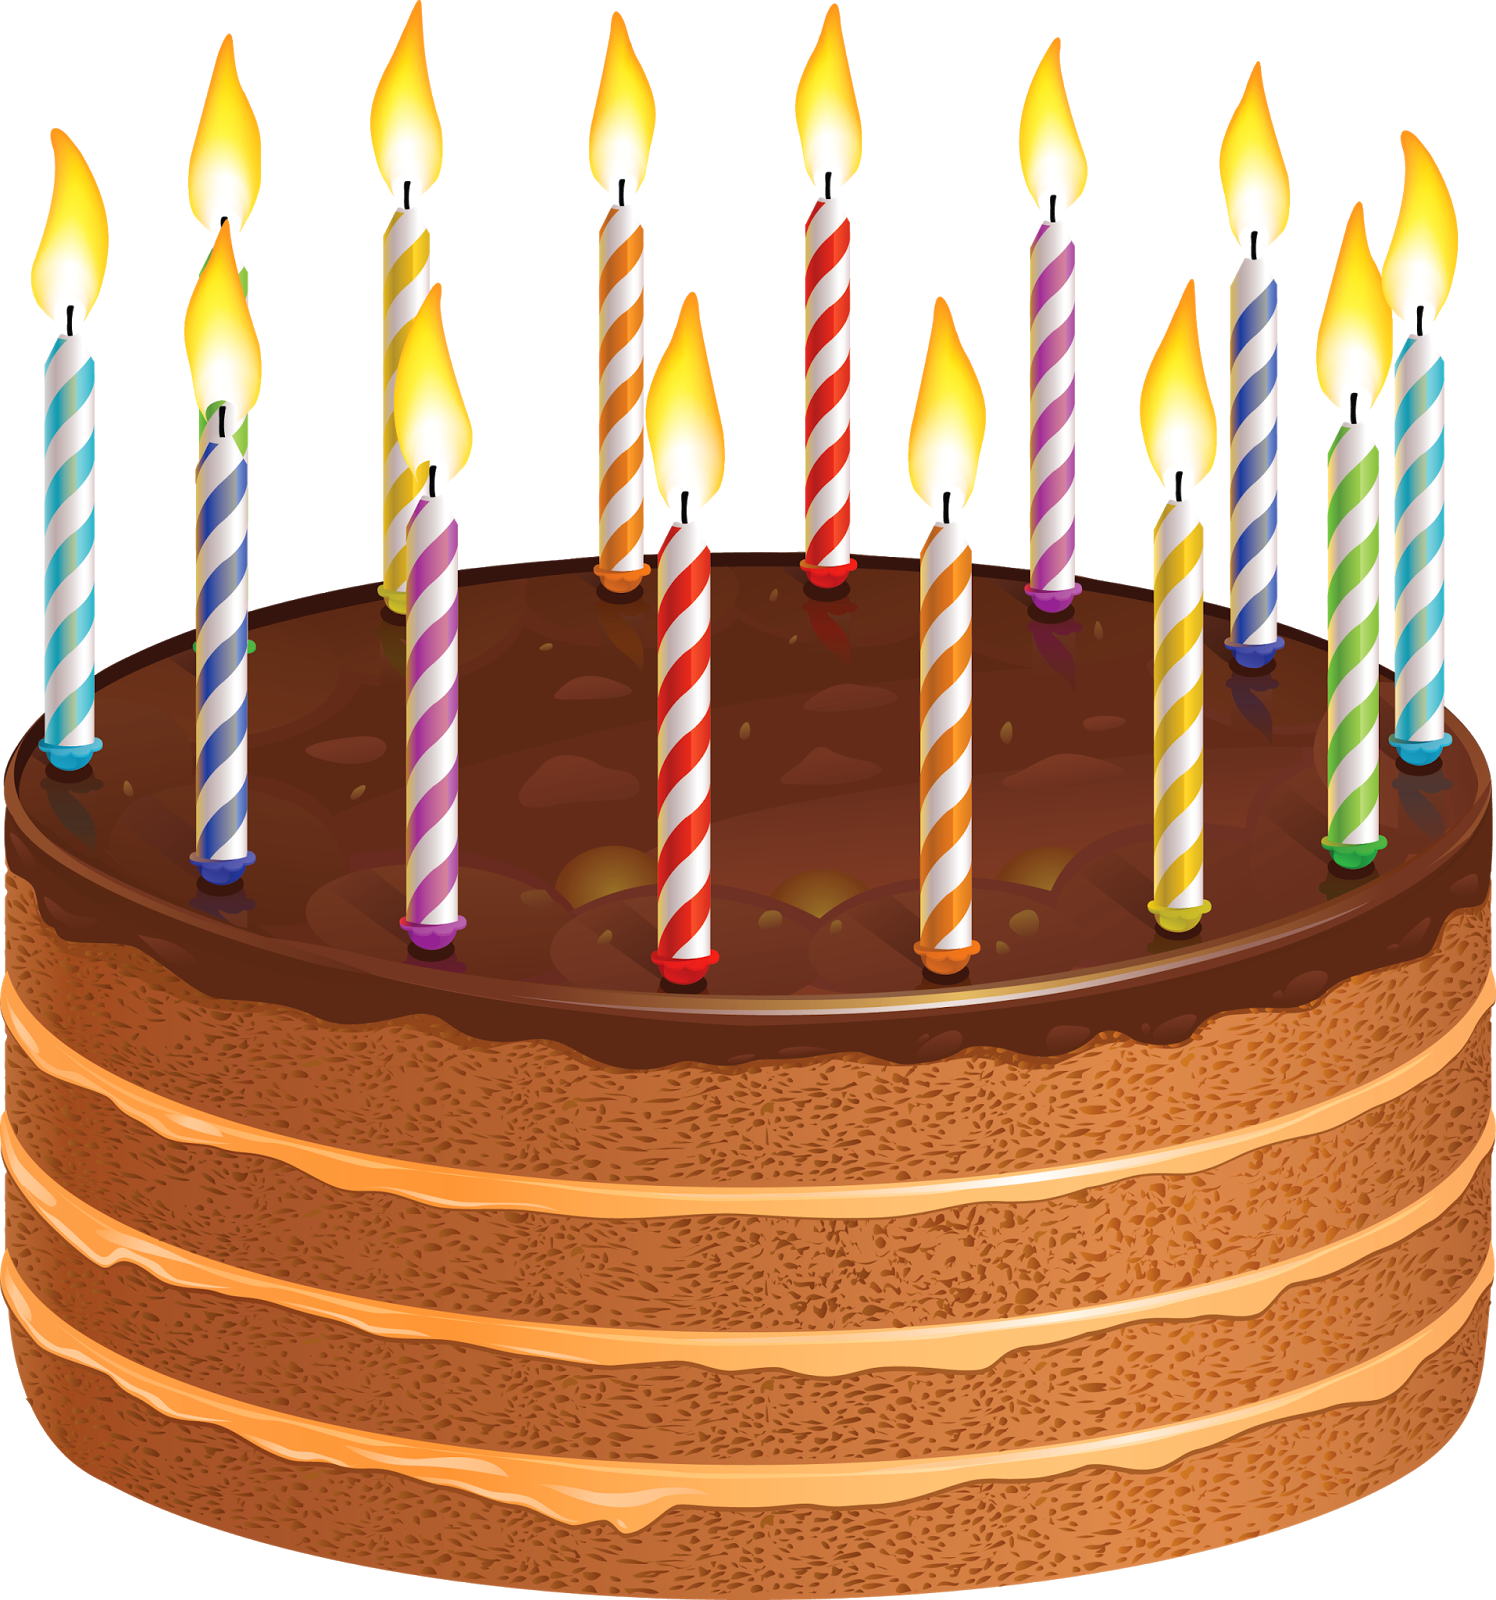 Happy birthday cake with candles clipart picture download Happy Birthday Wishes Greetings Clipart Cake With Candles, Happy ... picture download